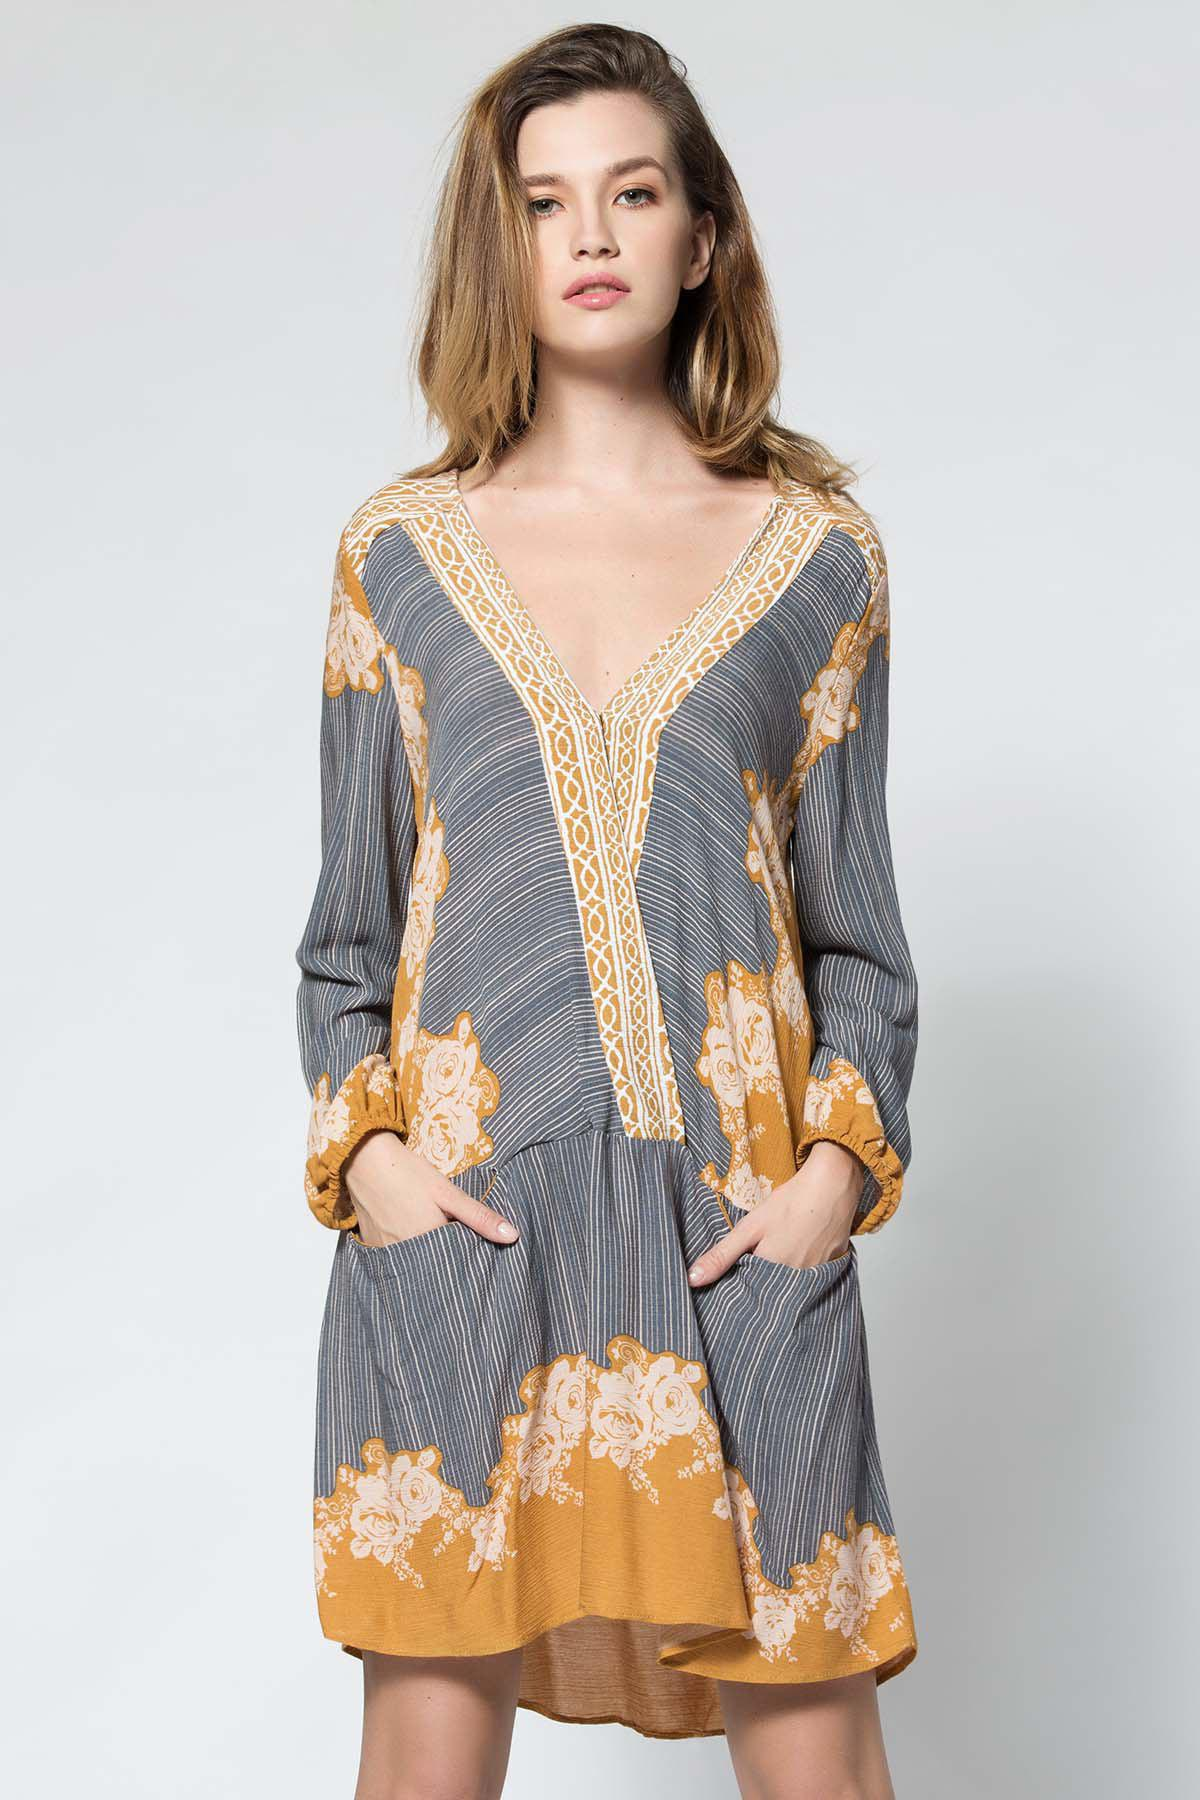 Bohemian Style V-Neck 3/4 Sleeve Floral Print Spliced Pocket Design Loose-Fitting Women's Dress